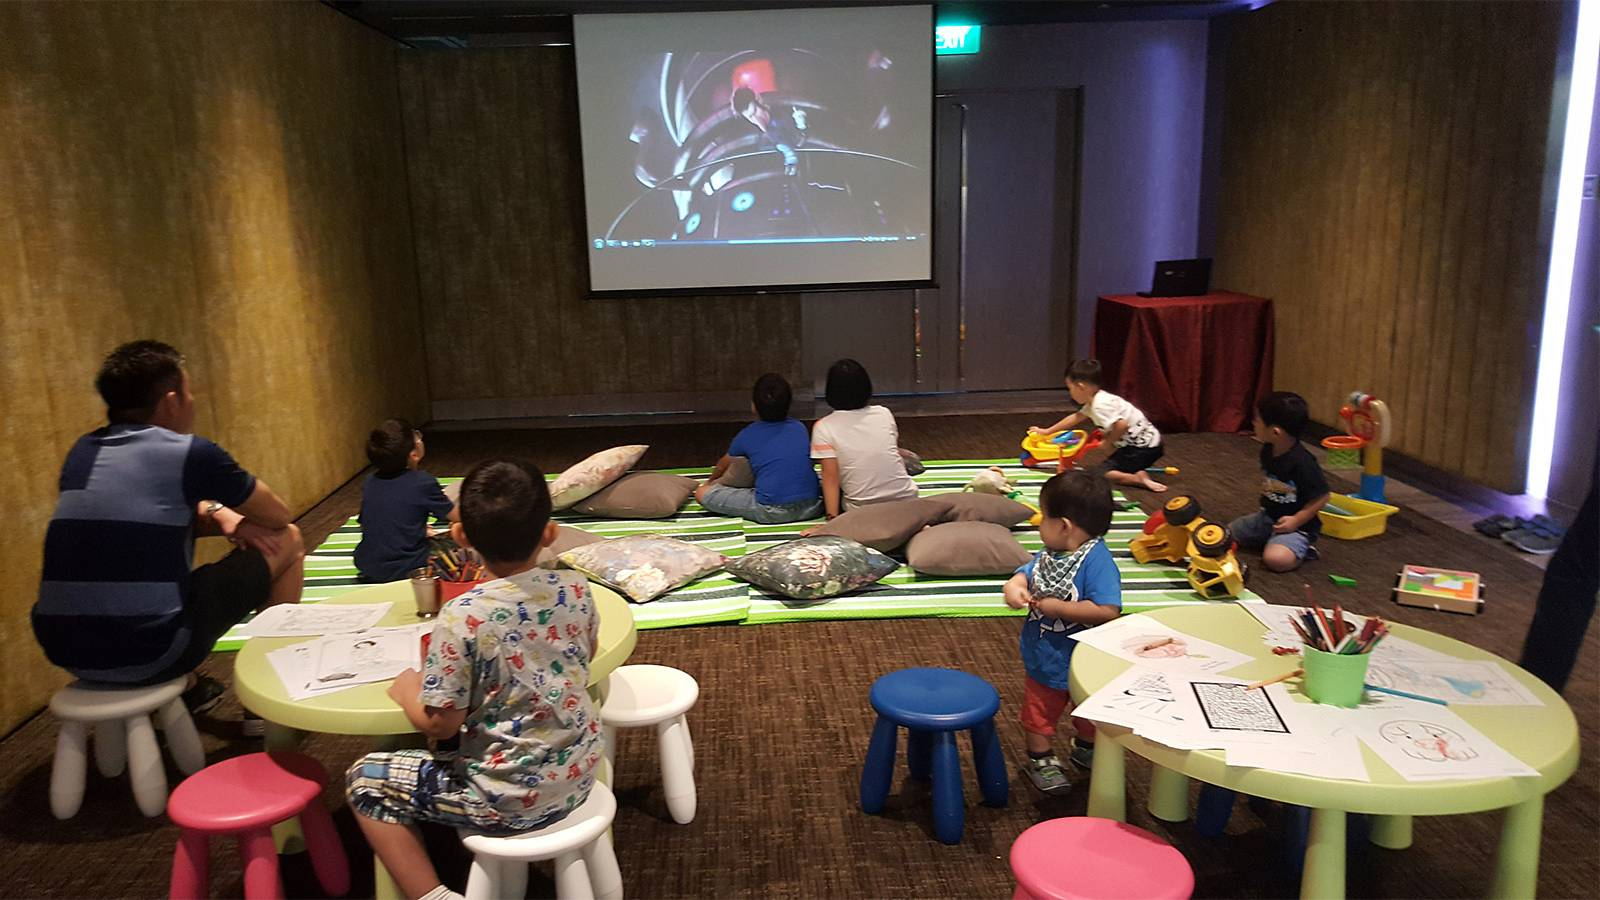 Parents---Family-friendly-restaurant-review-Mitzo-1